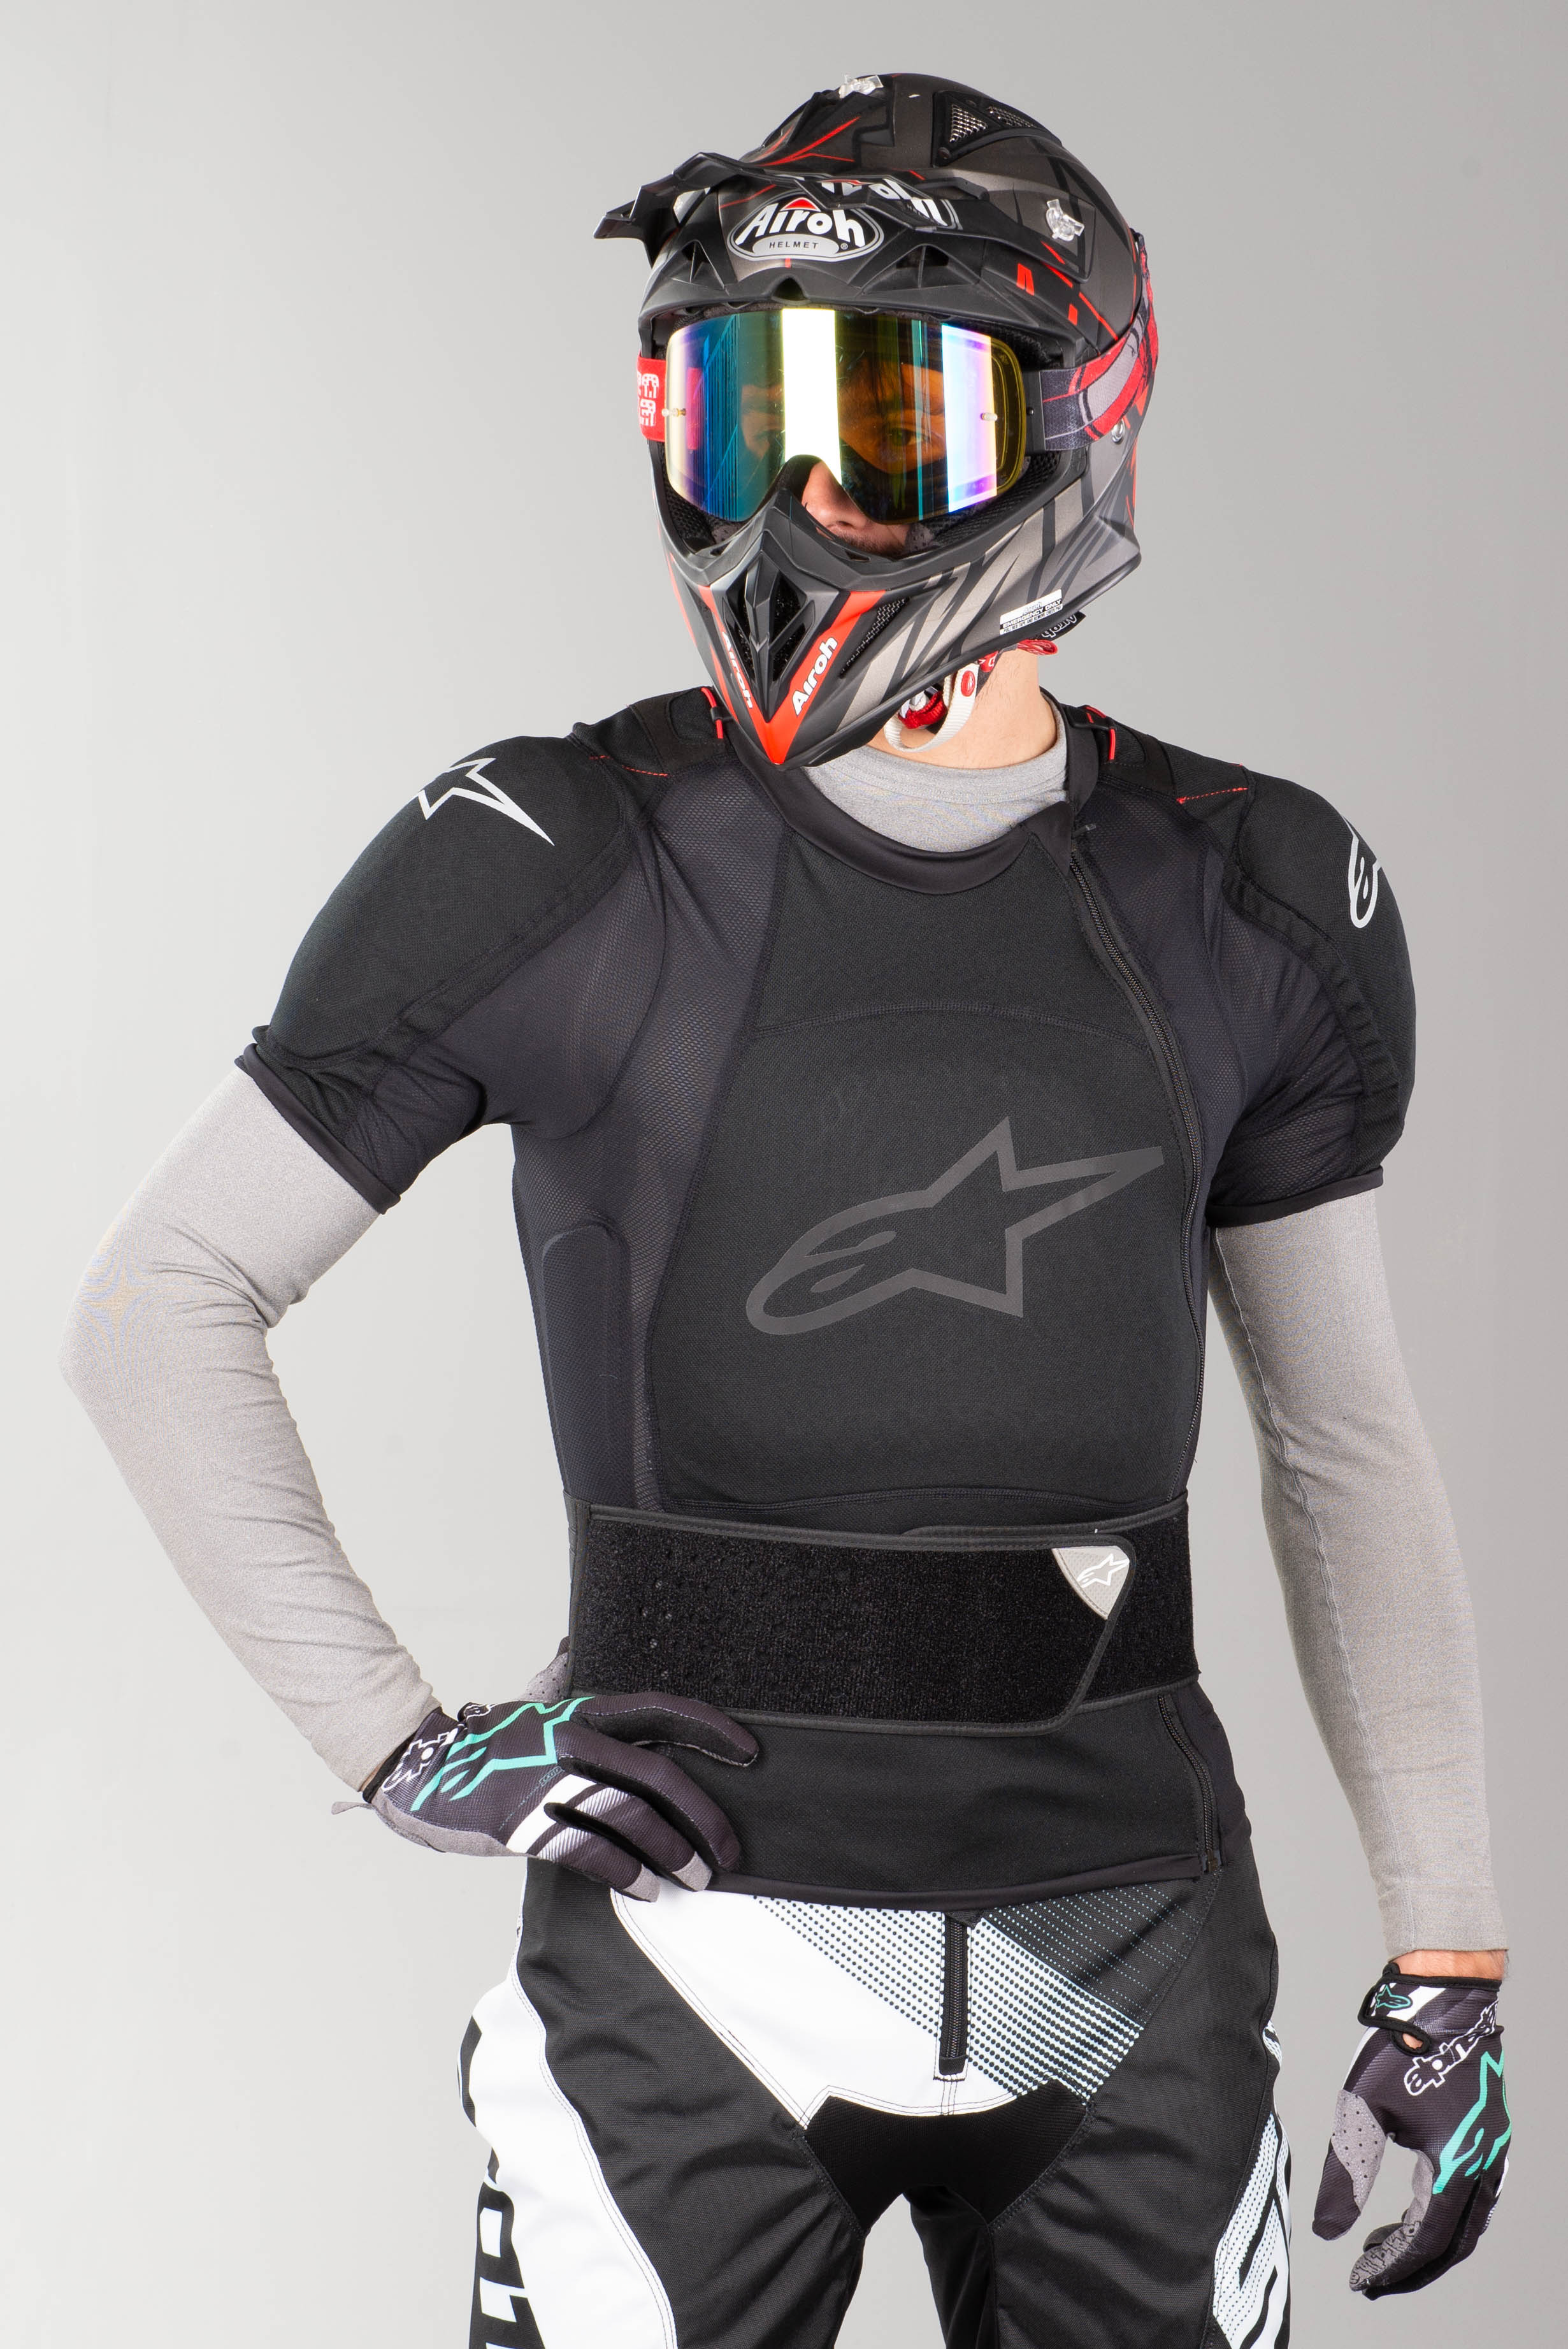 NEW ALPINESTARS SEQUENCE PRO MOTO DIRT BIKE PROTECTION SHORTS ALL SIZES